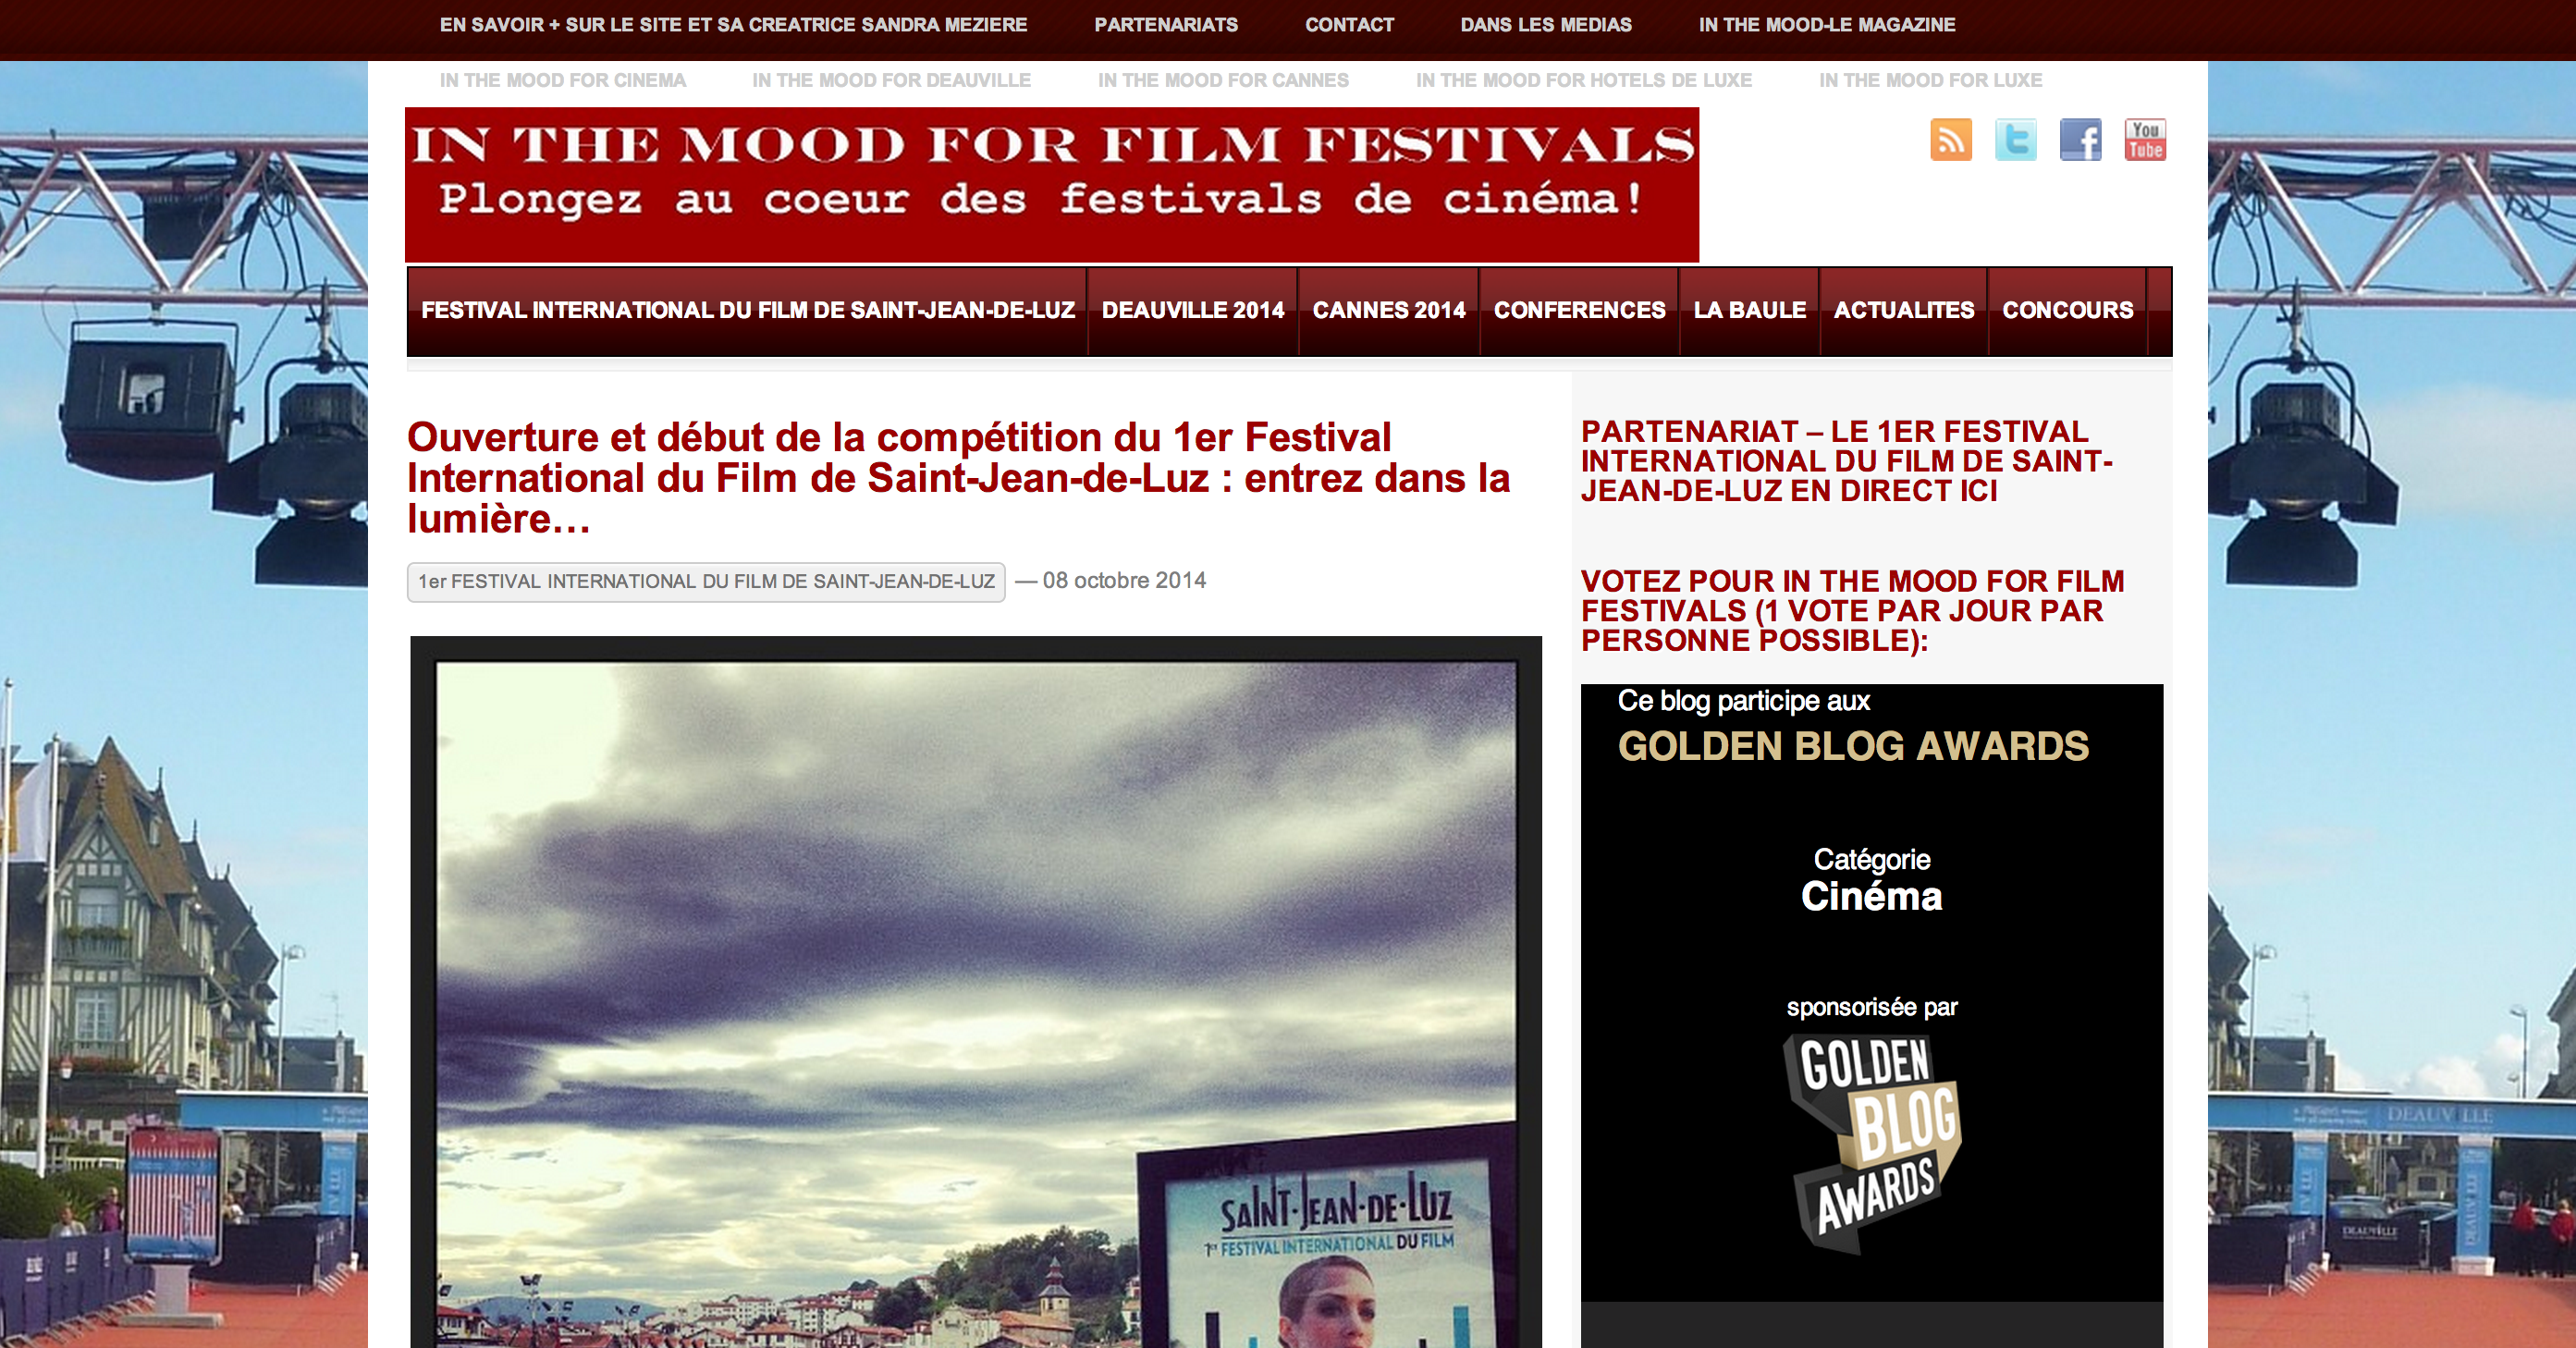 In the mood for film festivals